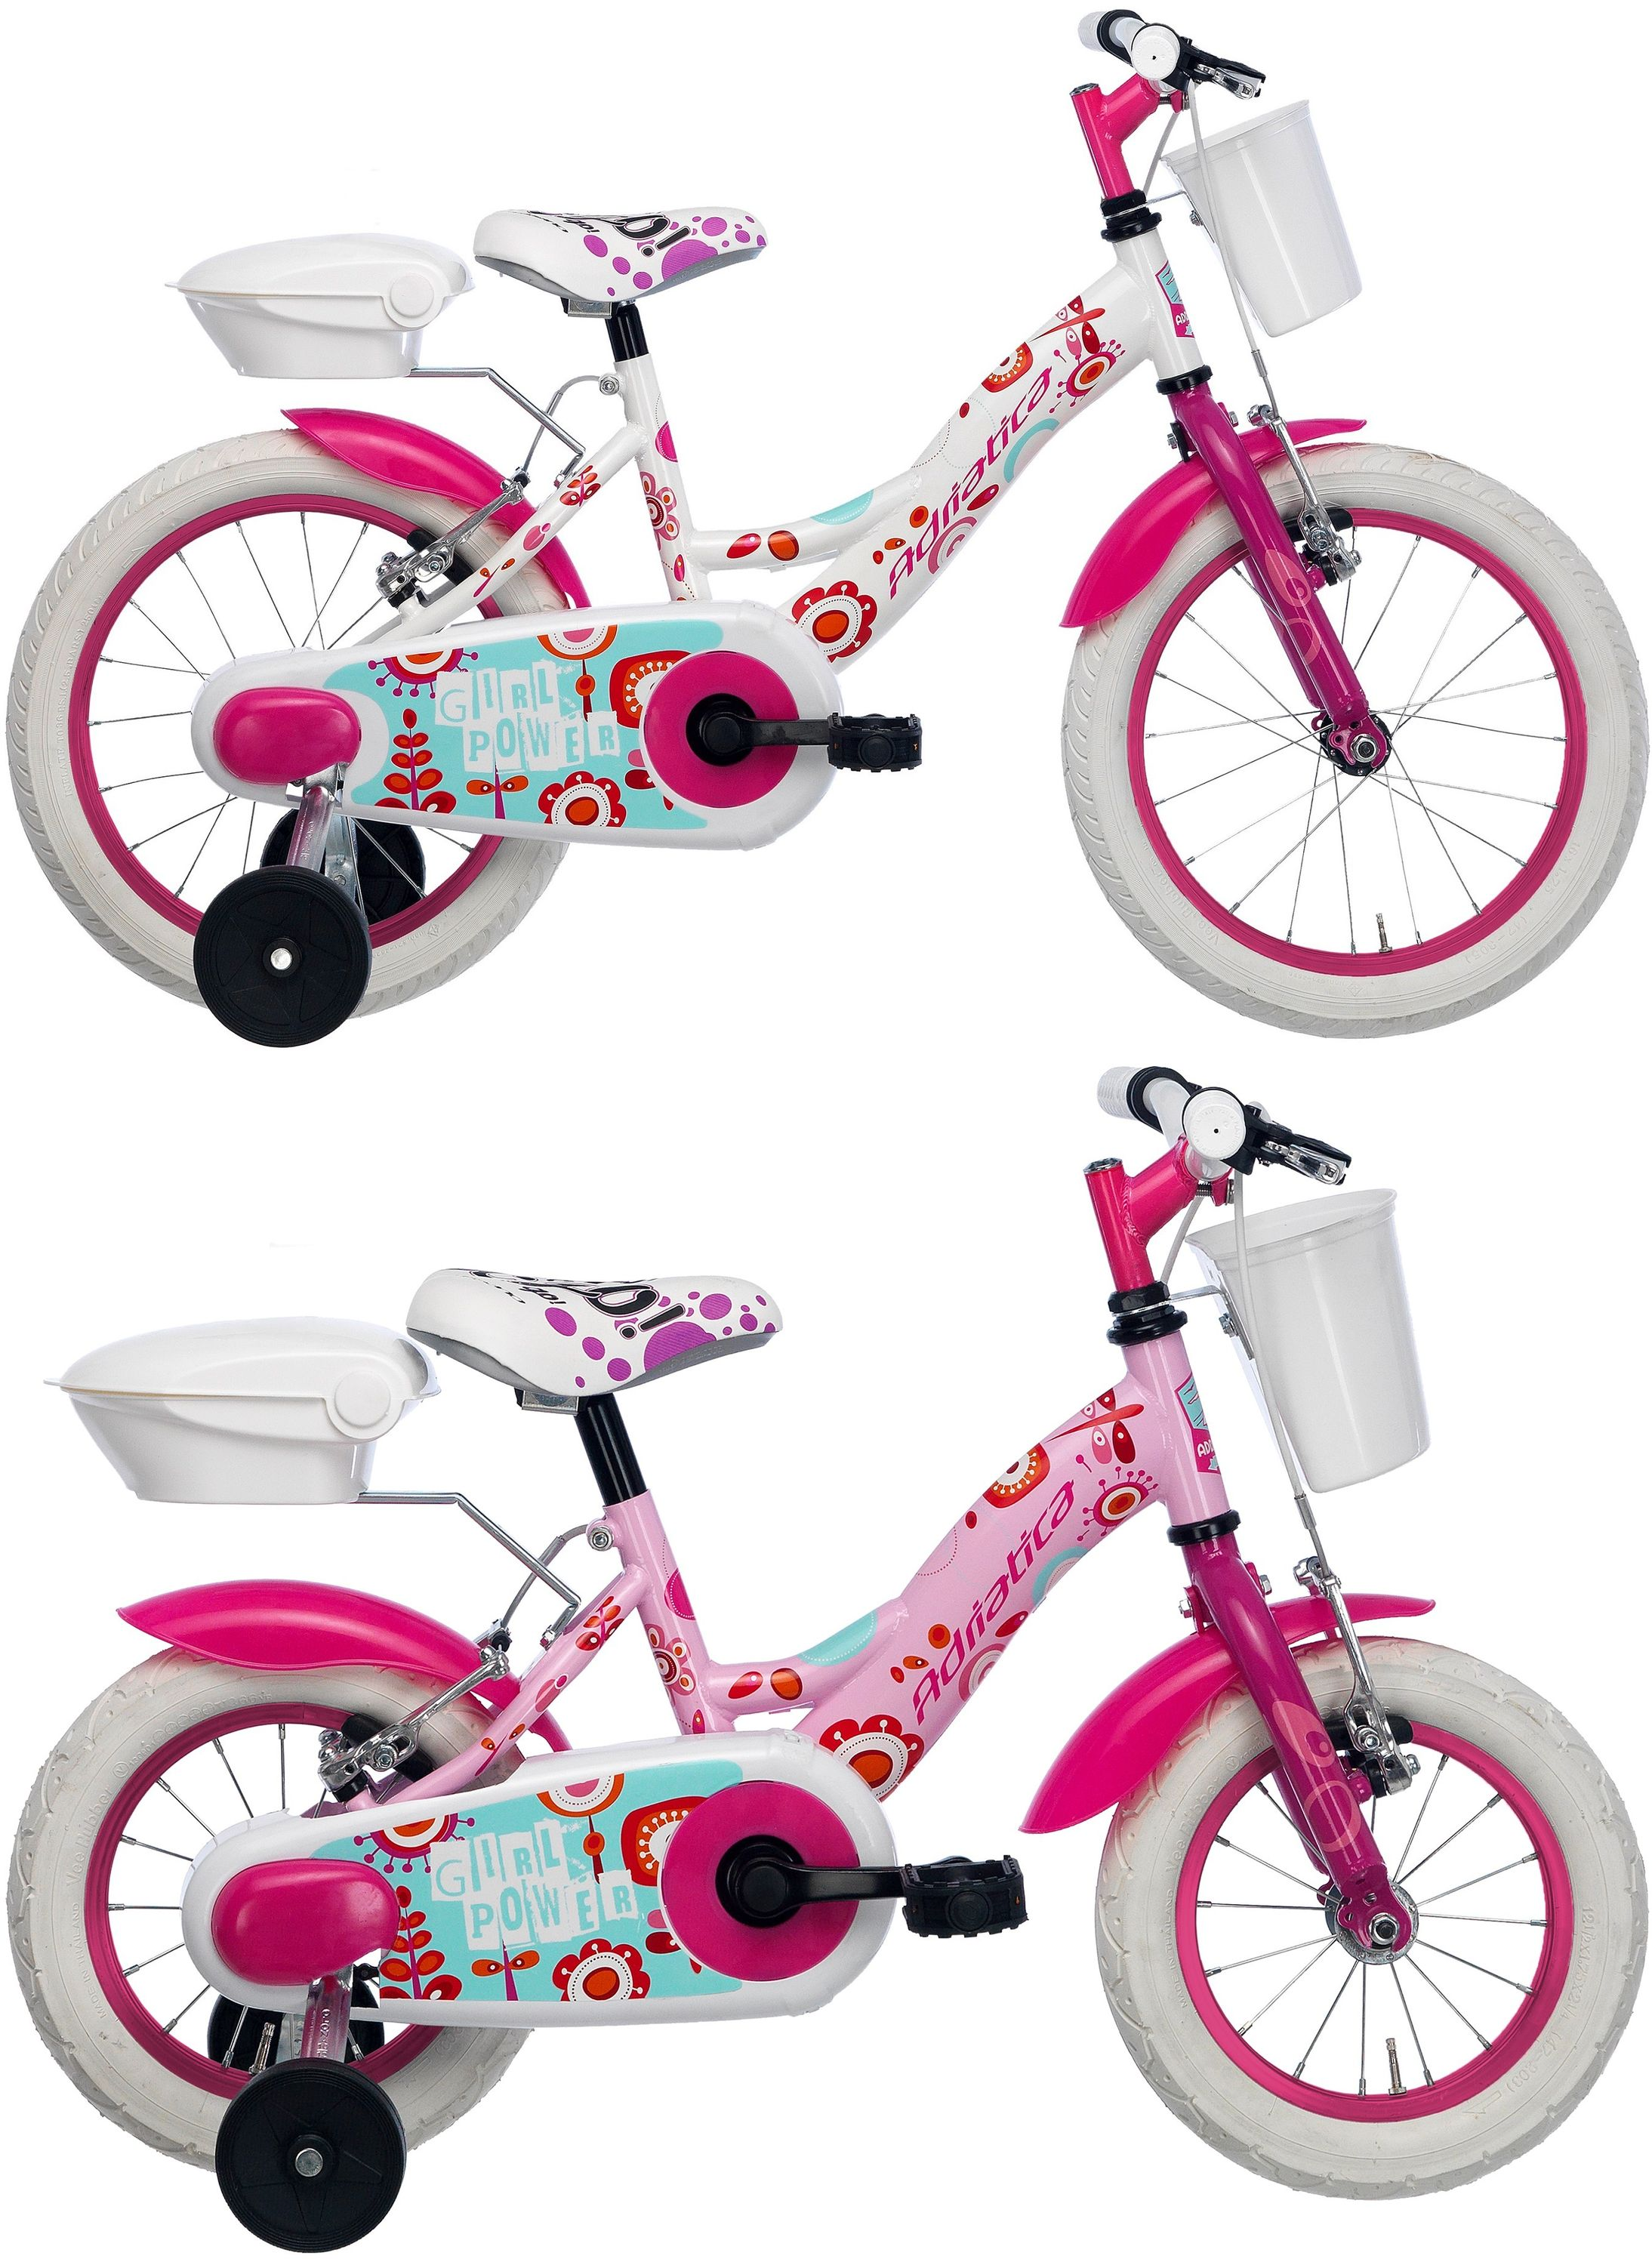 16 zoll m dchen fahrrad adriatica girl fahrr der. Black Bedroom Furniture Sets. Home Design Ideas